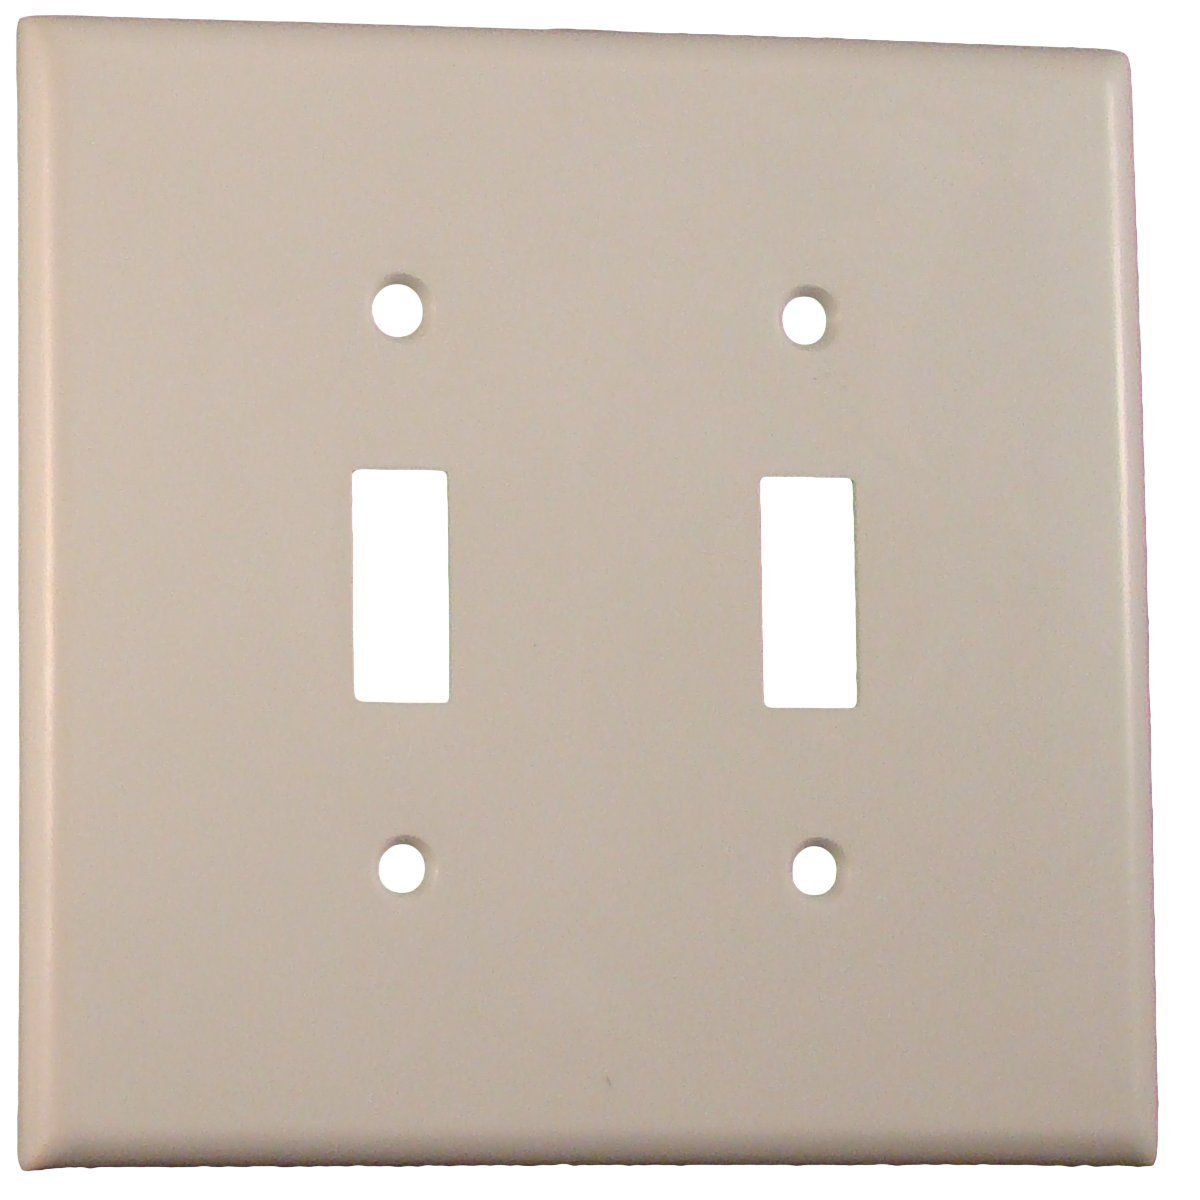 Glow In The Dark V2gang Wall Cover Plate White Plastic Standard Size For Double Toggle Switch 3 Pack Be Sure To Check Wall Coverings Glow In The Dark Glow